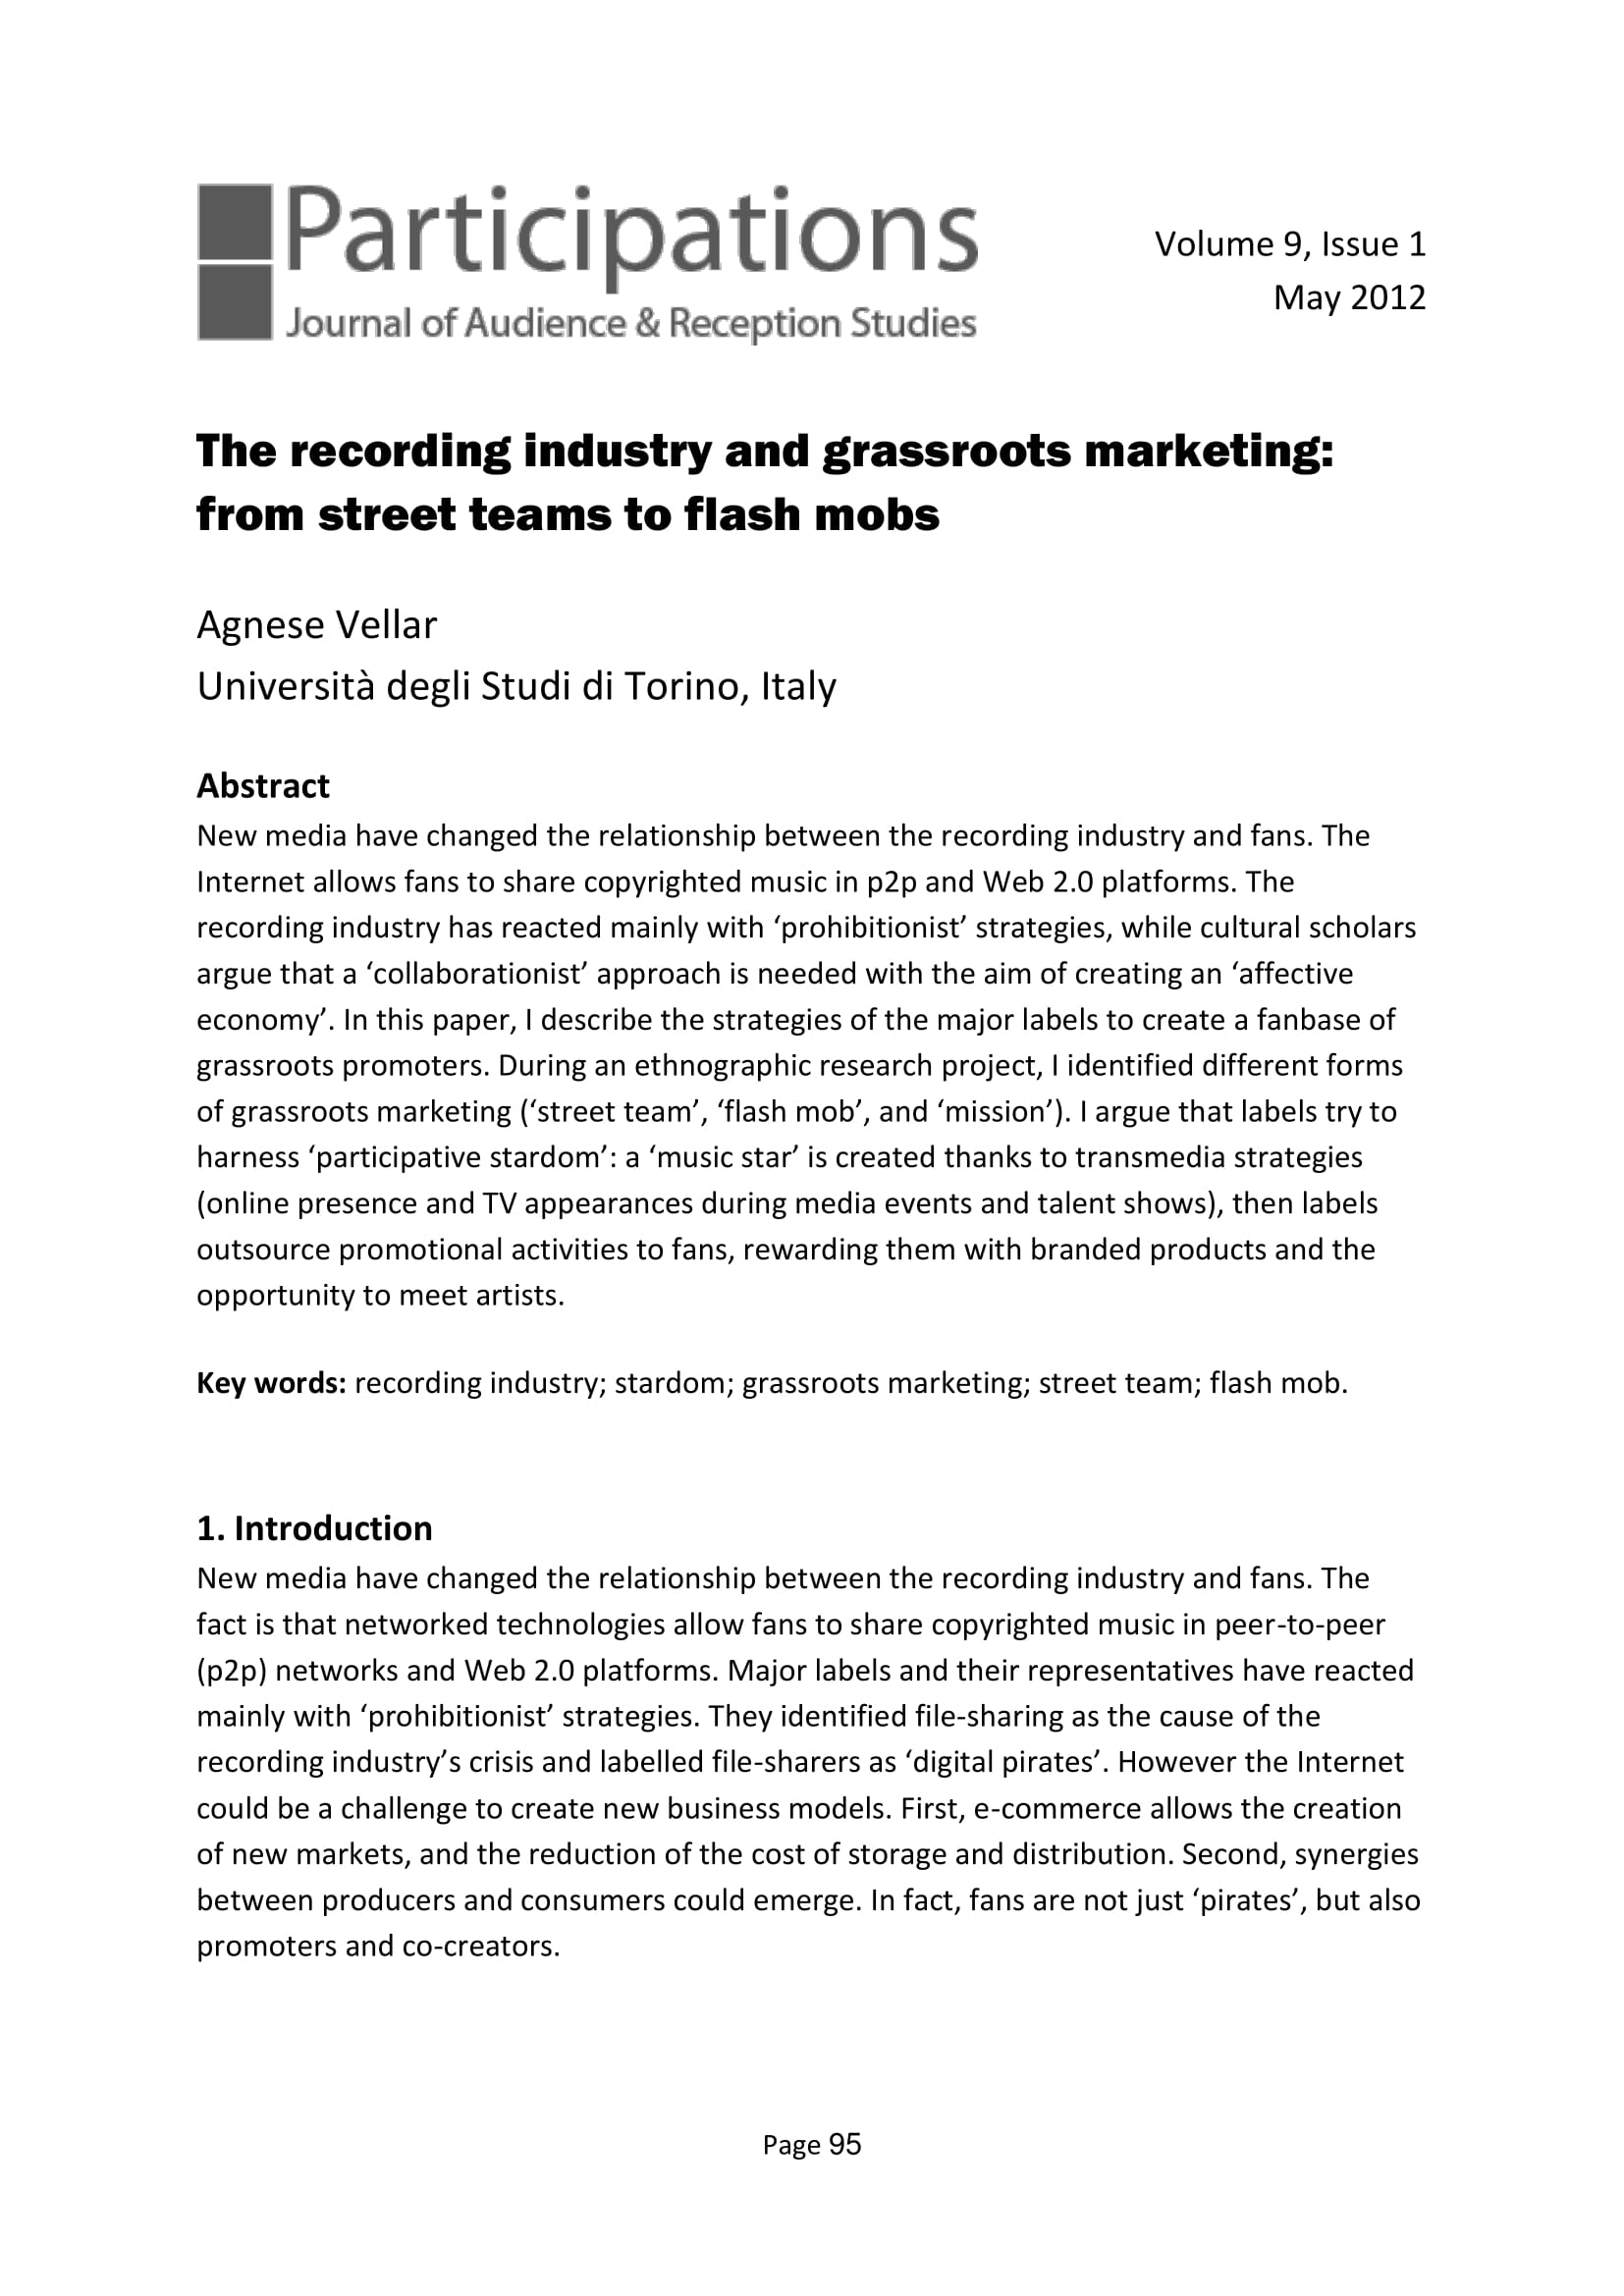 grassroots markeitng in recording industry 01